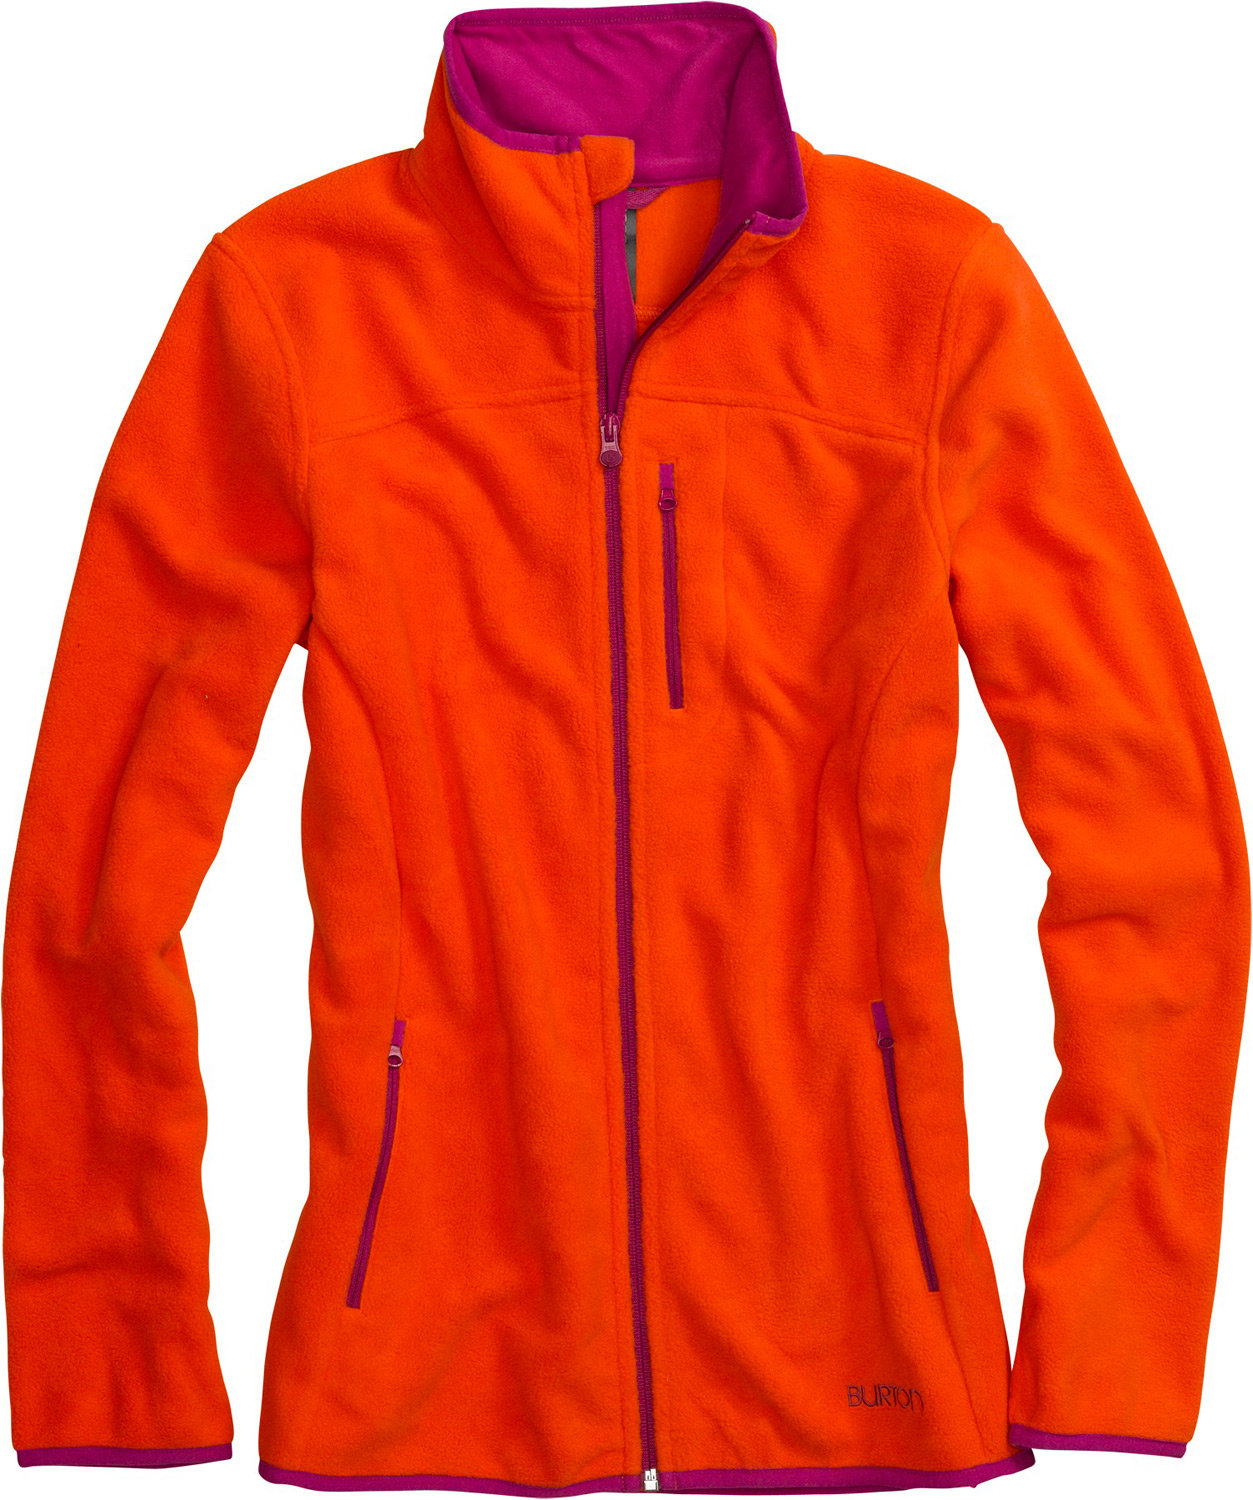 Snowboard Awesome under your jacket or all alone-sizzling warmth that mirrors your every move.Key Features of the Burton Smolder Fleece: DRYRIDE Thermex Fleece Fabric Microfleece-Lined Zippered Handwarmer Pockets Binding on Collar, Cuffs, and Hem Profile Fit for Street Style or Layering - $46.95